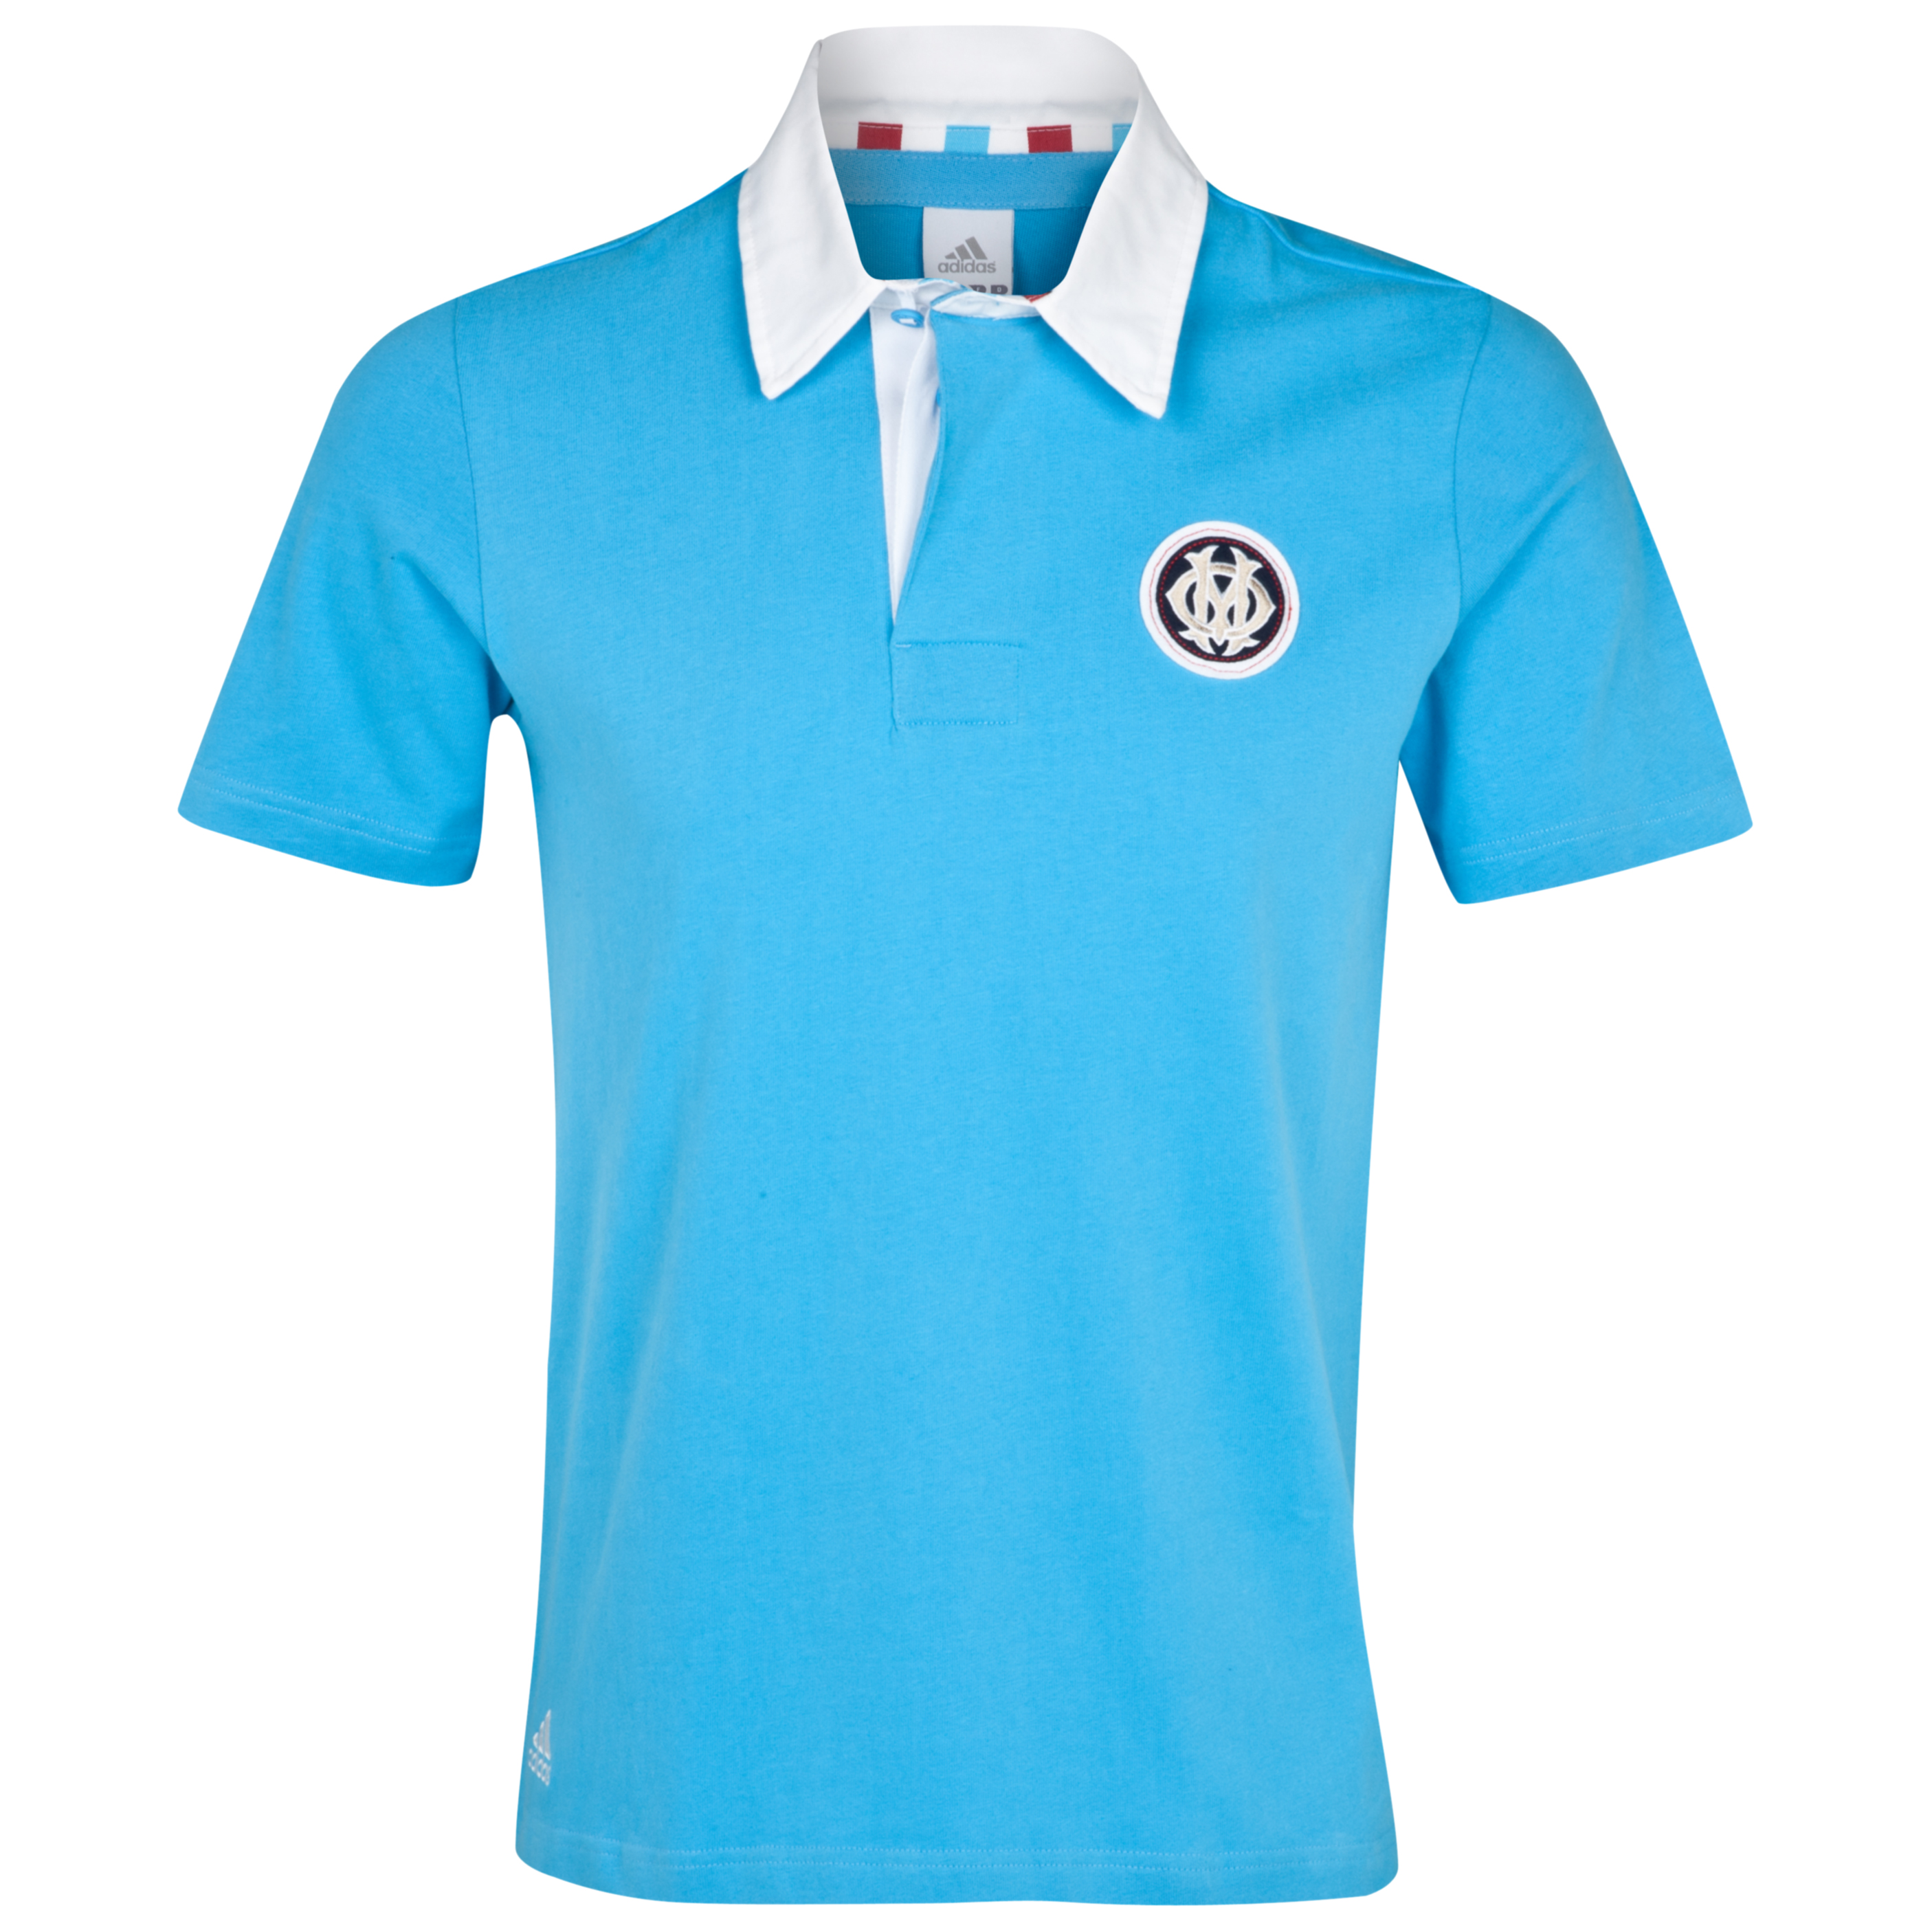 Polo Authentic Olympique de Marseille - Bleu/Blanc - Homme